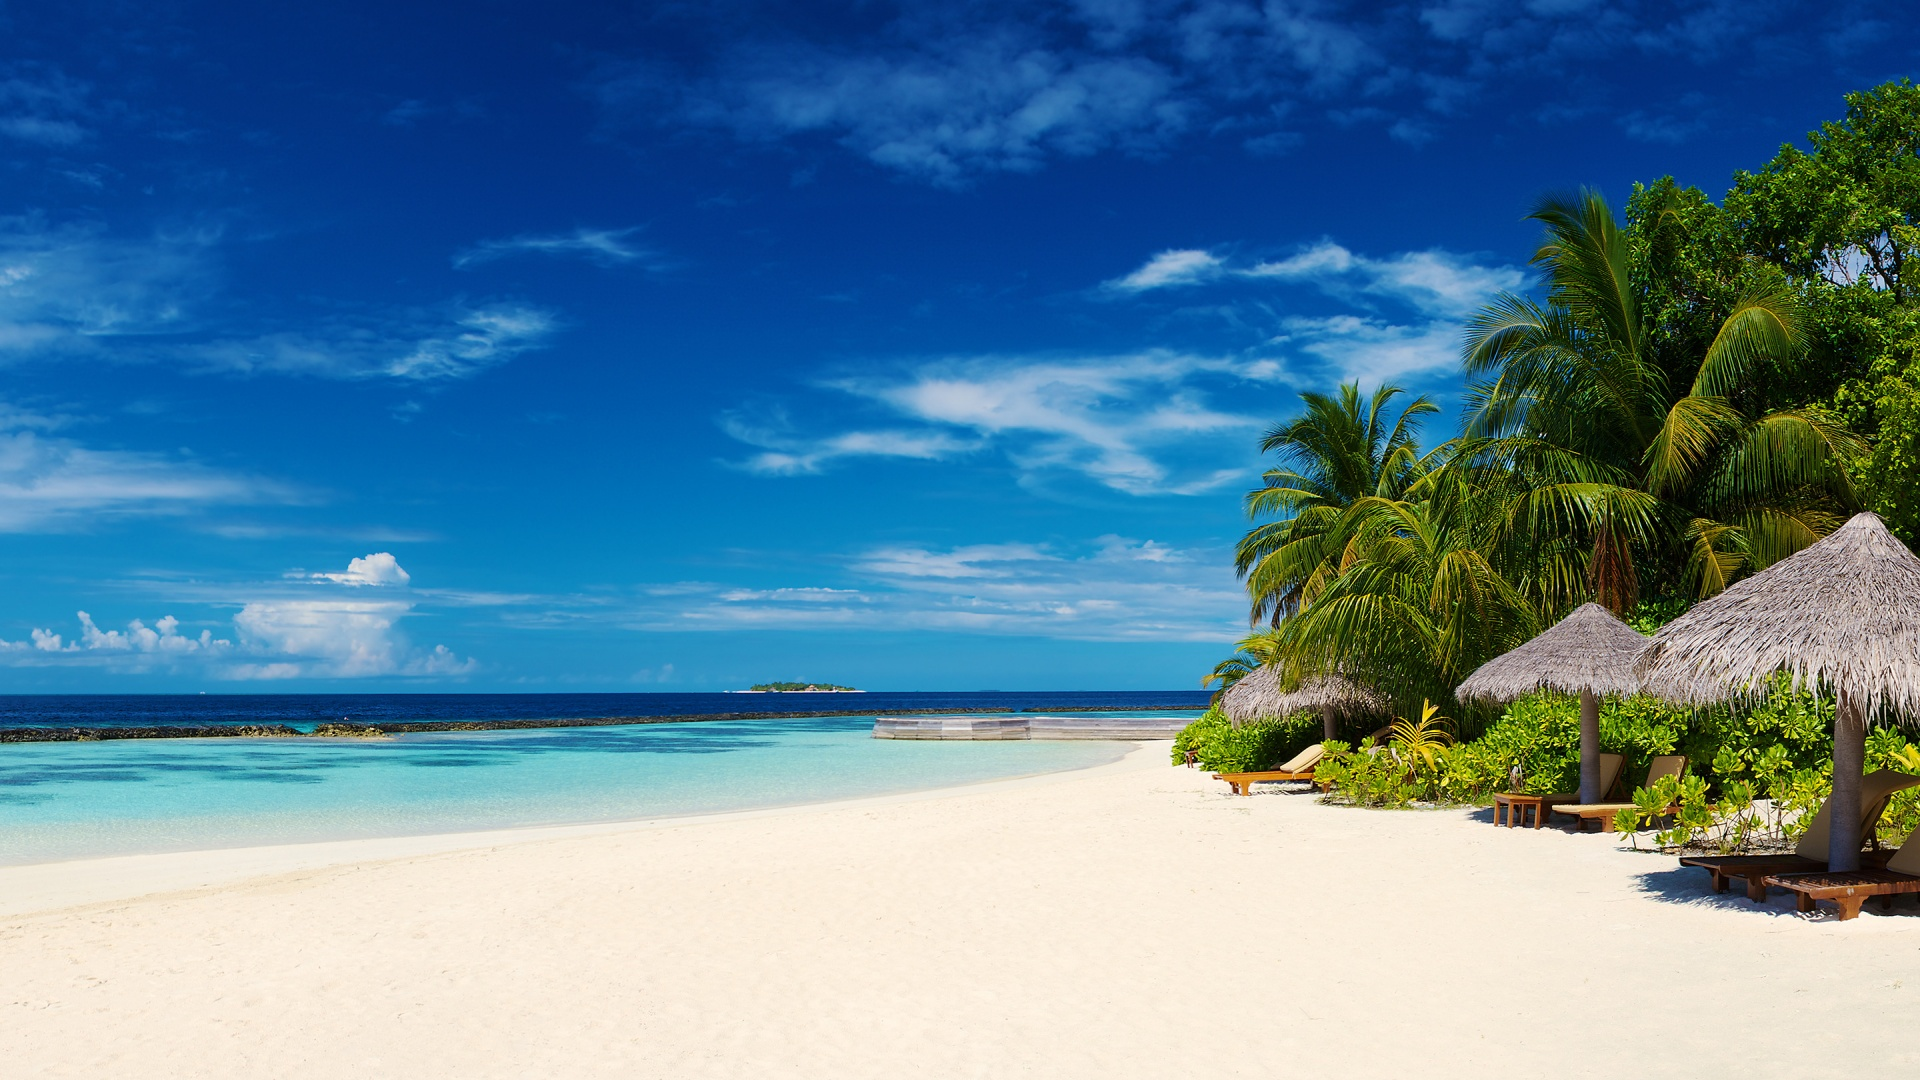 Beach HD Wallpapers Group (91+)